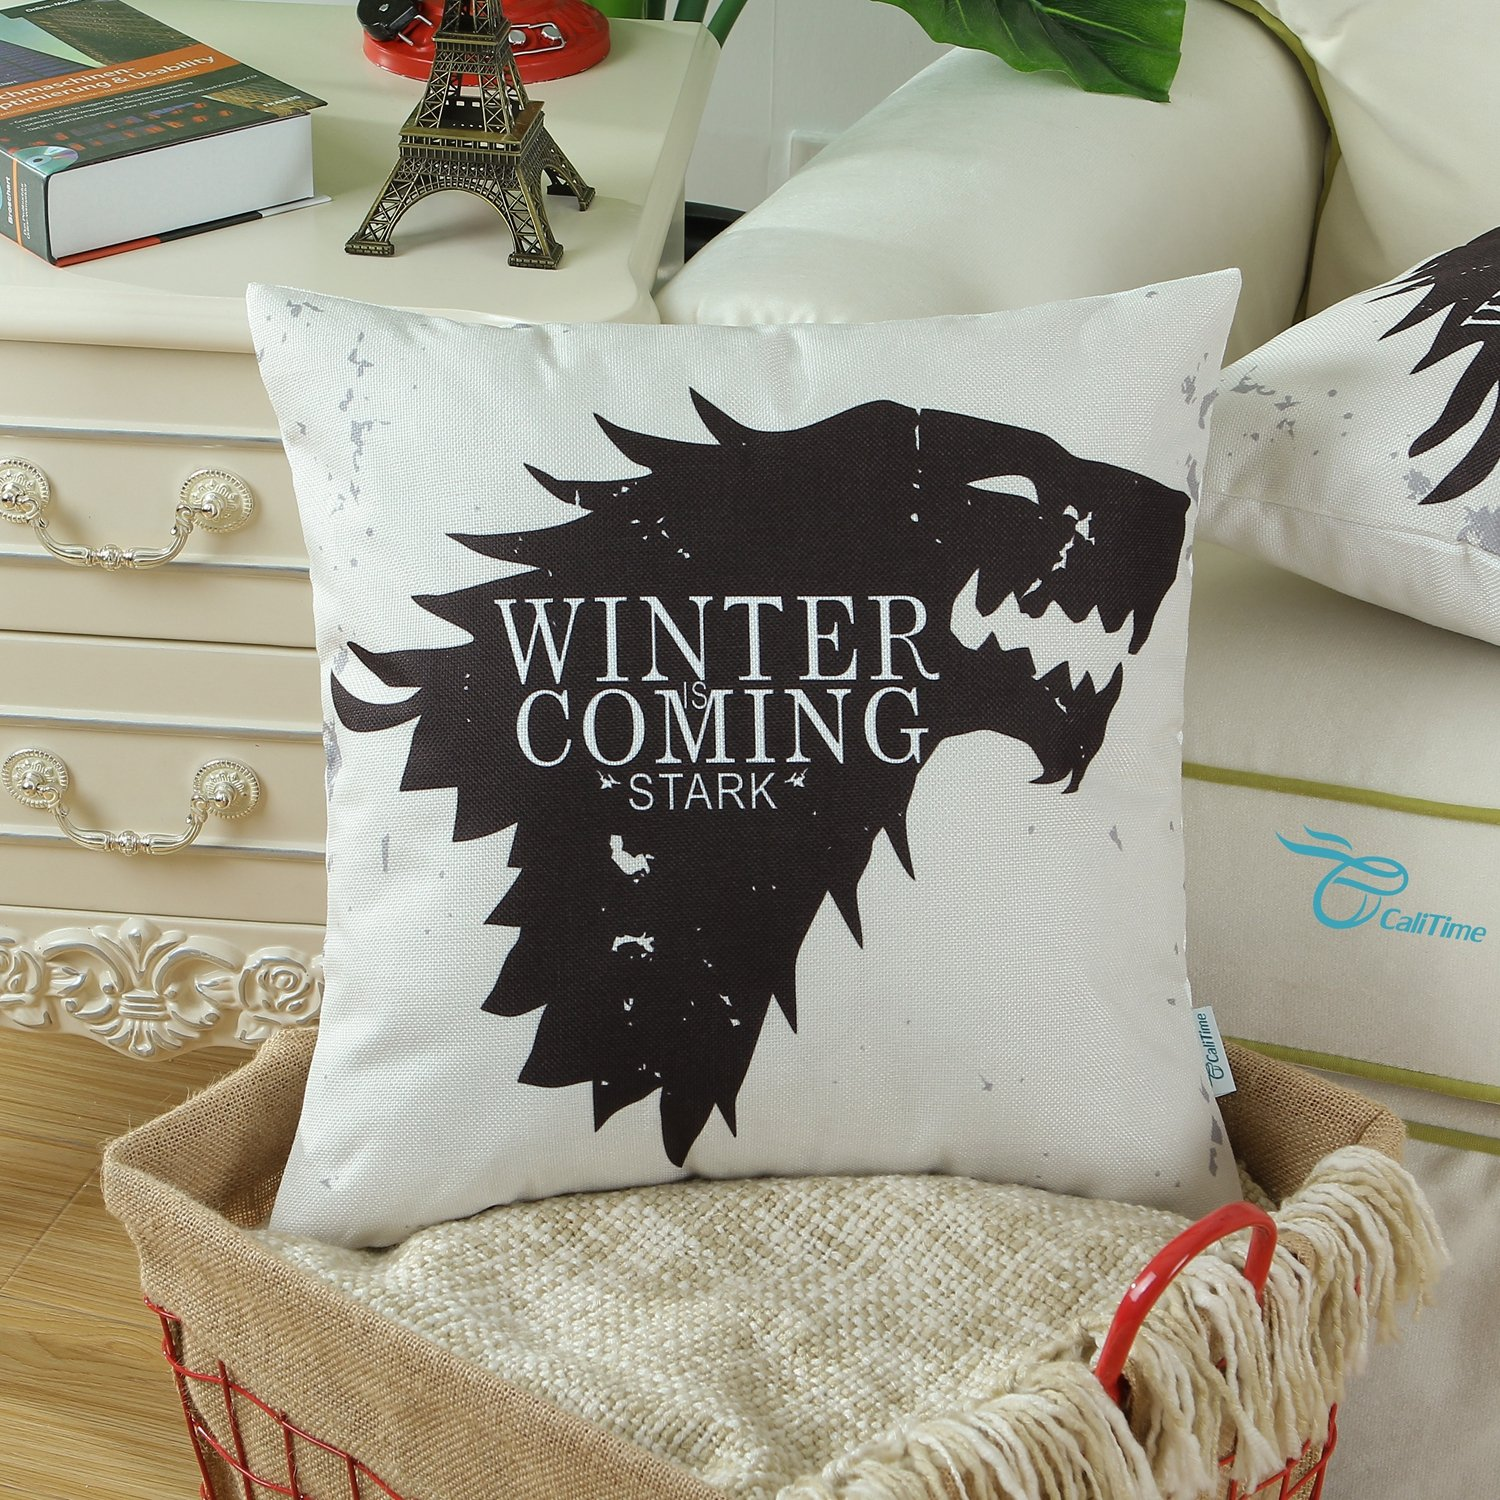 CaliTime Cushion Covers Bolster Pillow Case Shells for Bed Sofa Couch 45cm X 45cm, A Game of Thrones, Houses Stark Winter Is Coming Qingdao Ray Trading Co. Ltd. DSCF015A